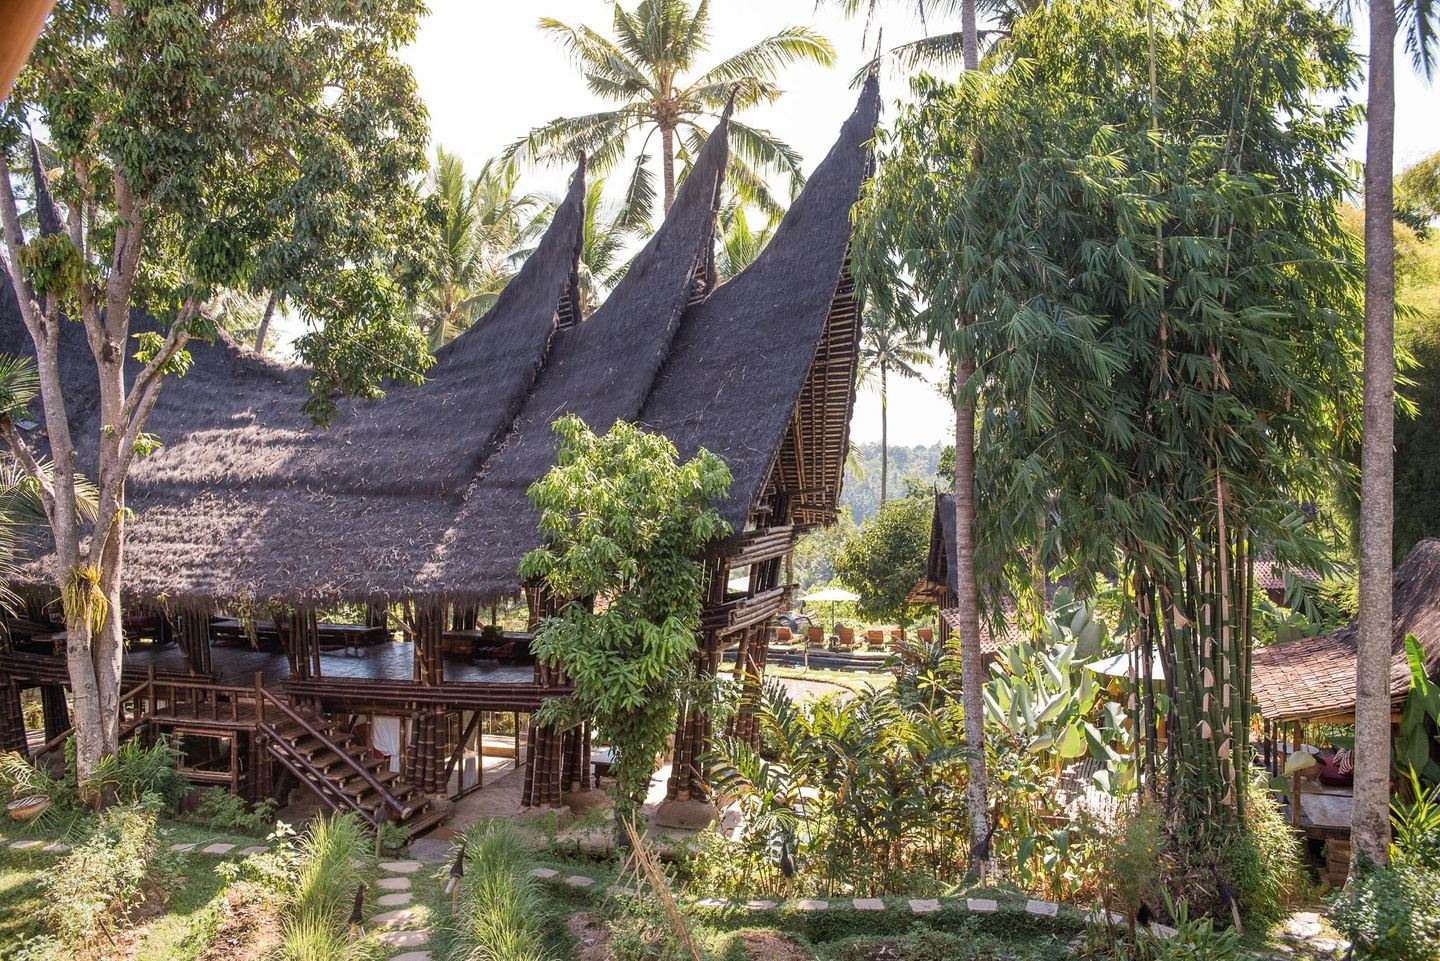 Bhakti Yoga, Raw Food, Workshops & More: A Yoga Retreat in Ubud, Bali